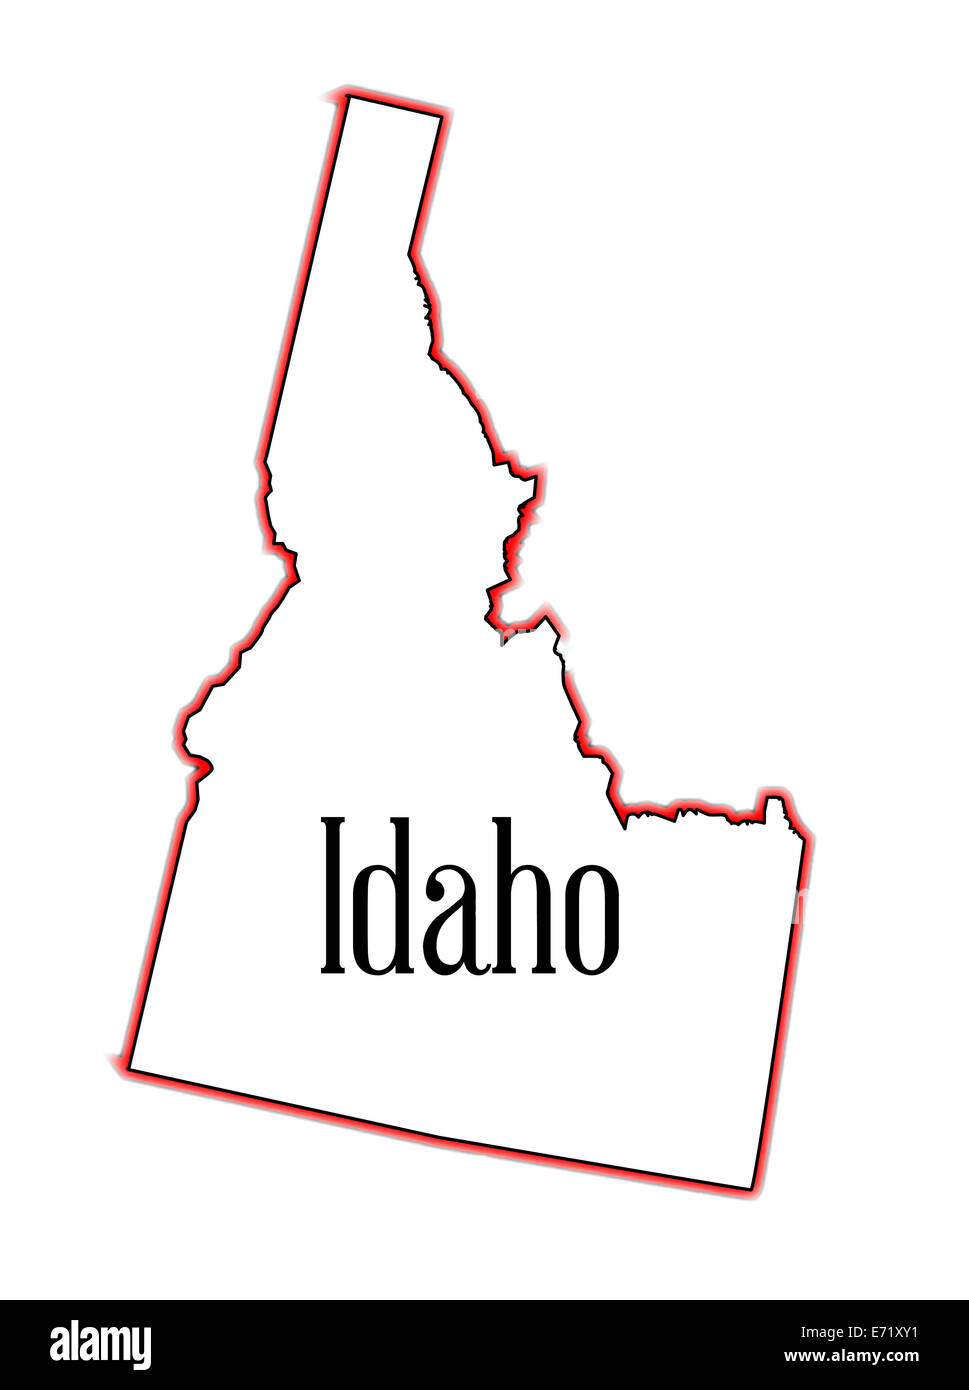 Outline of the state of Idaho isolated - Stock Image